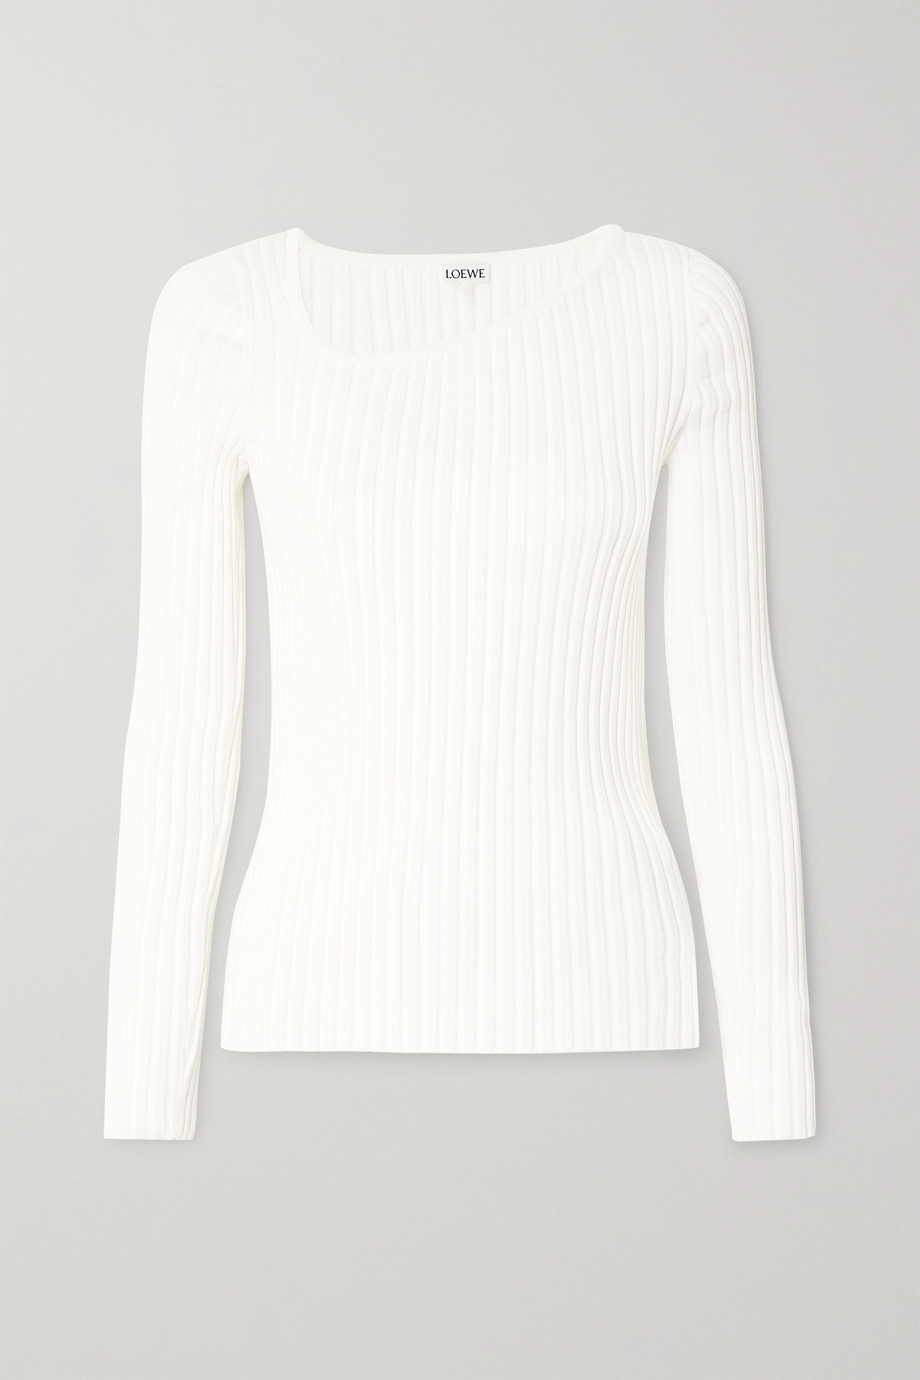 Loewe Asymmetric ribbed-knit sweater